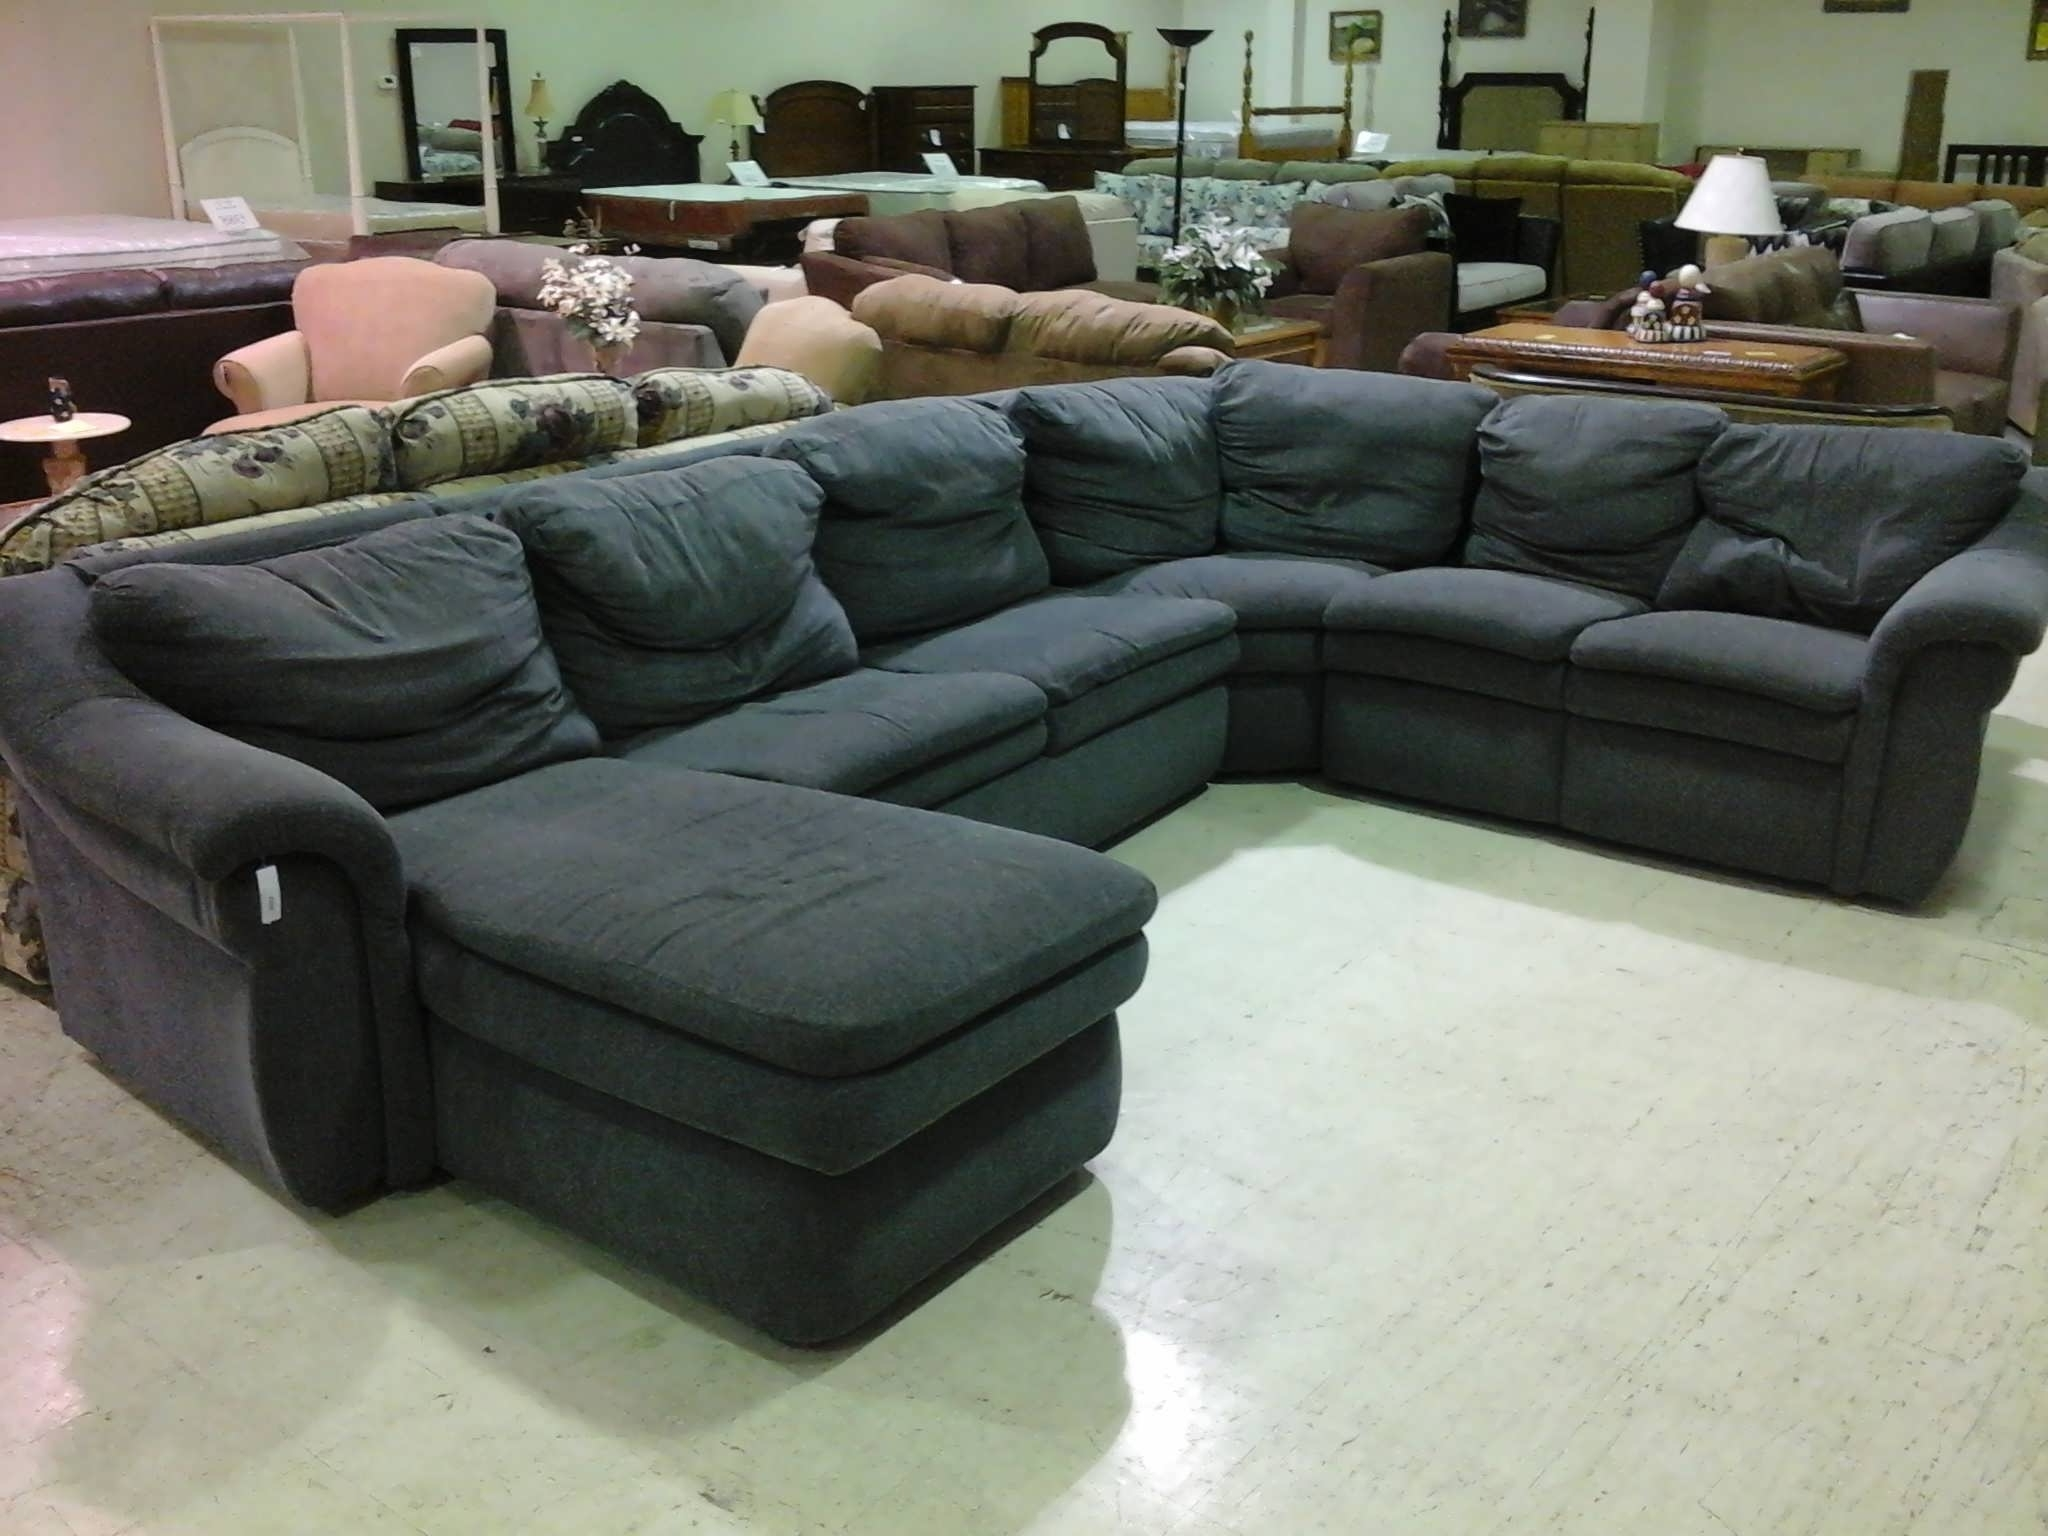 Preferred Sectional Couches With Chaise In Sofa : Chaise Sofa Leather L Shaped Couch Black Sectional Couch (View 9 of 15)